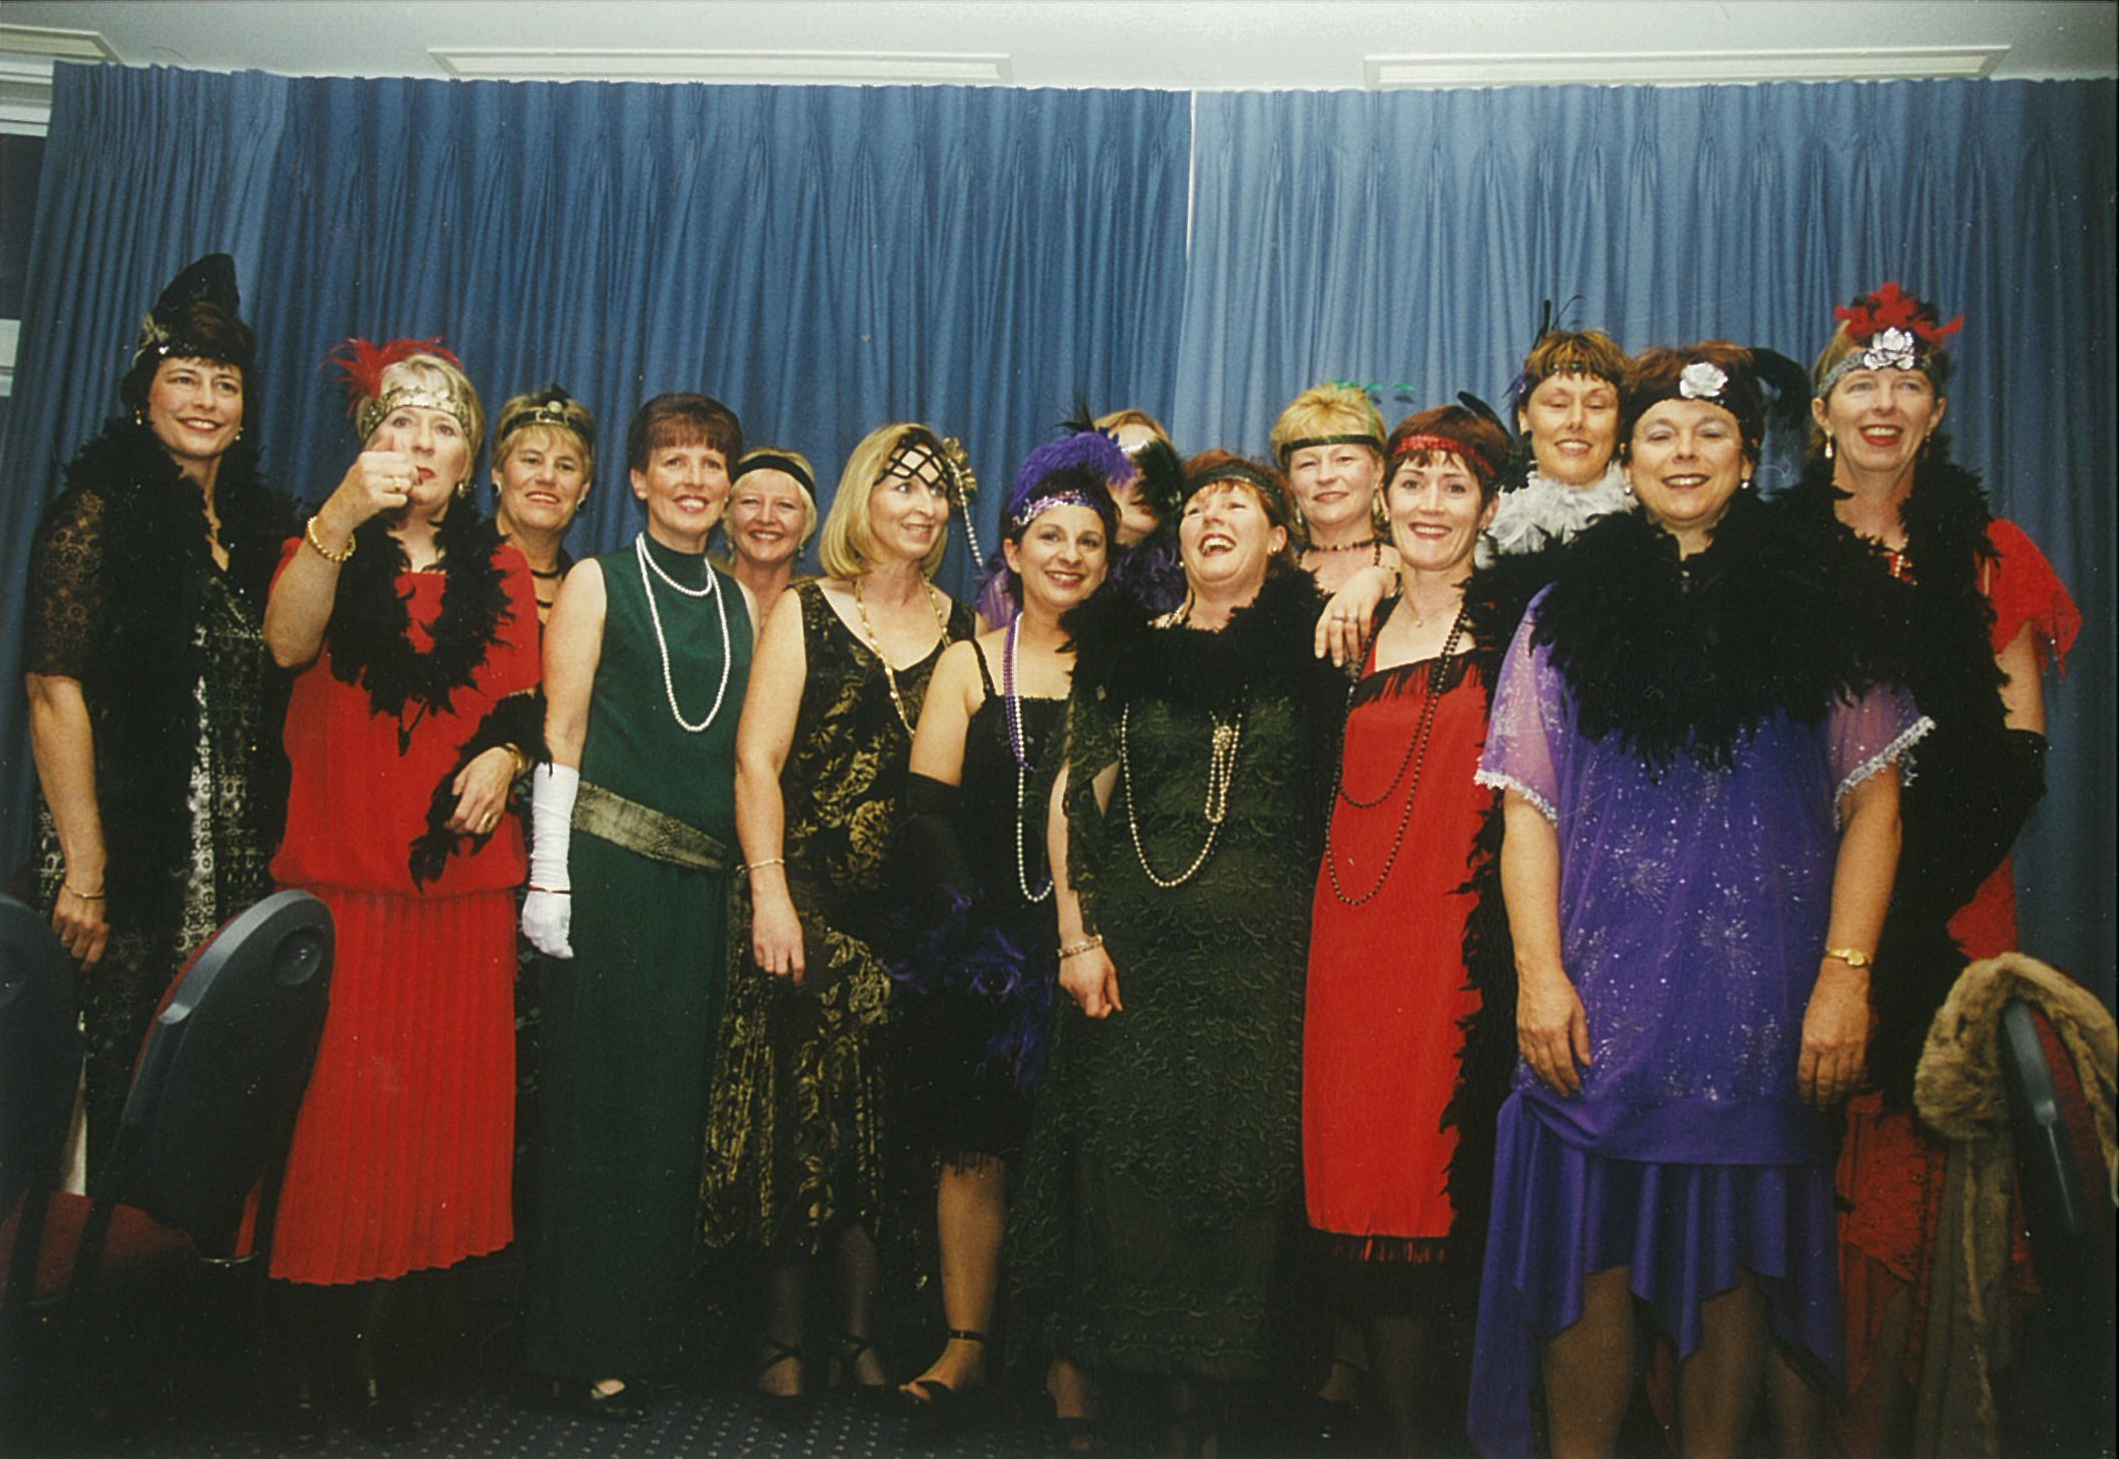 People at the 2000 Conference in Napier